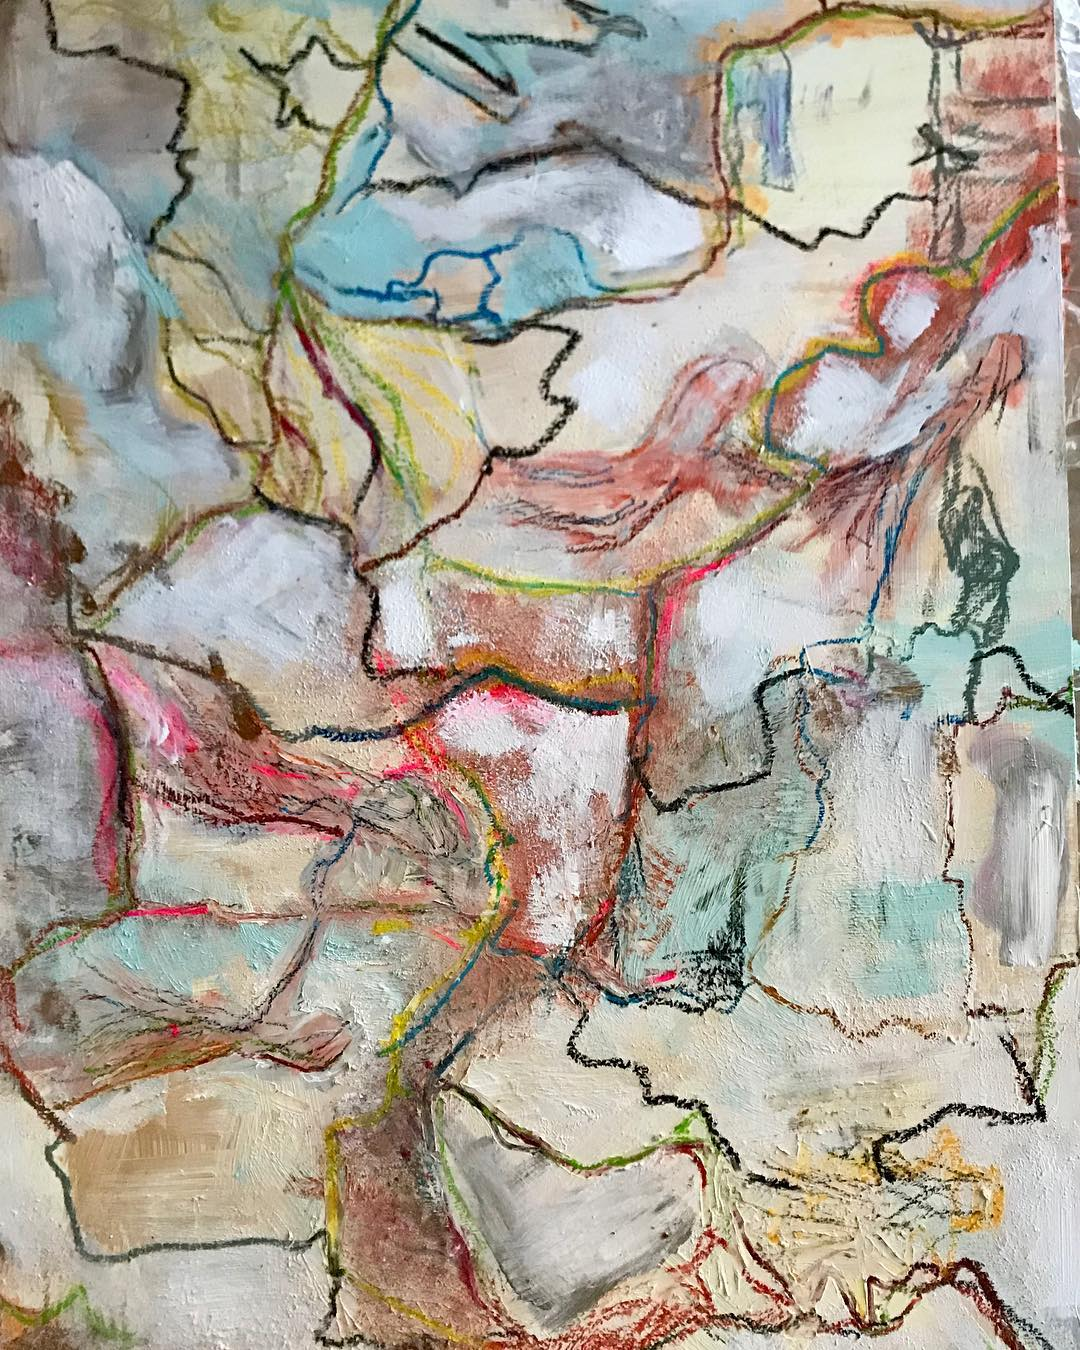 Brigid McGivern, 2018, _Childhood Cracks_, acrylic and pastel on panel, 24x36. $3500jpg.jpg